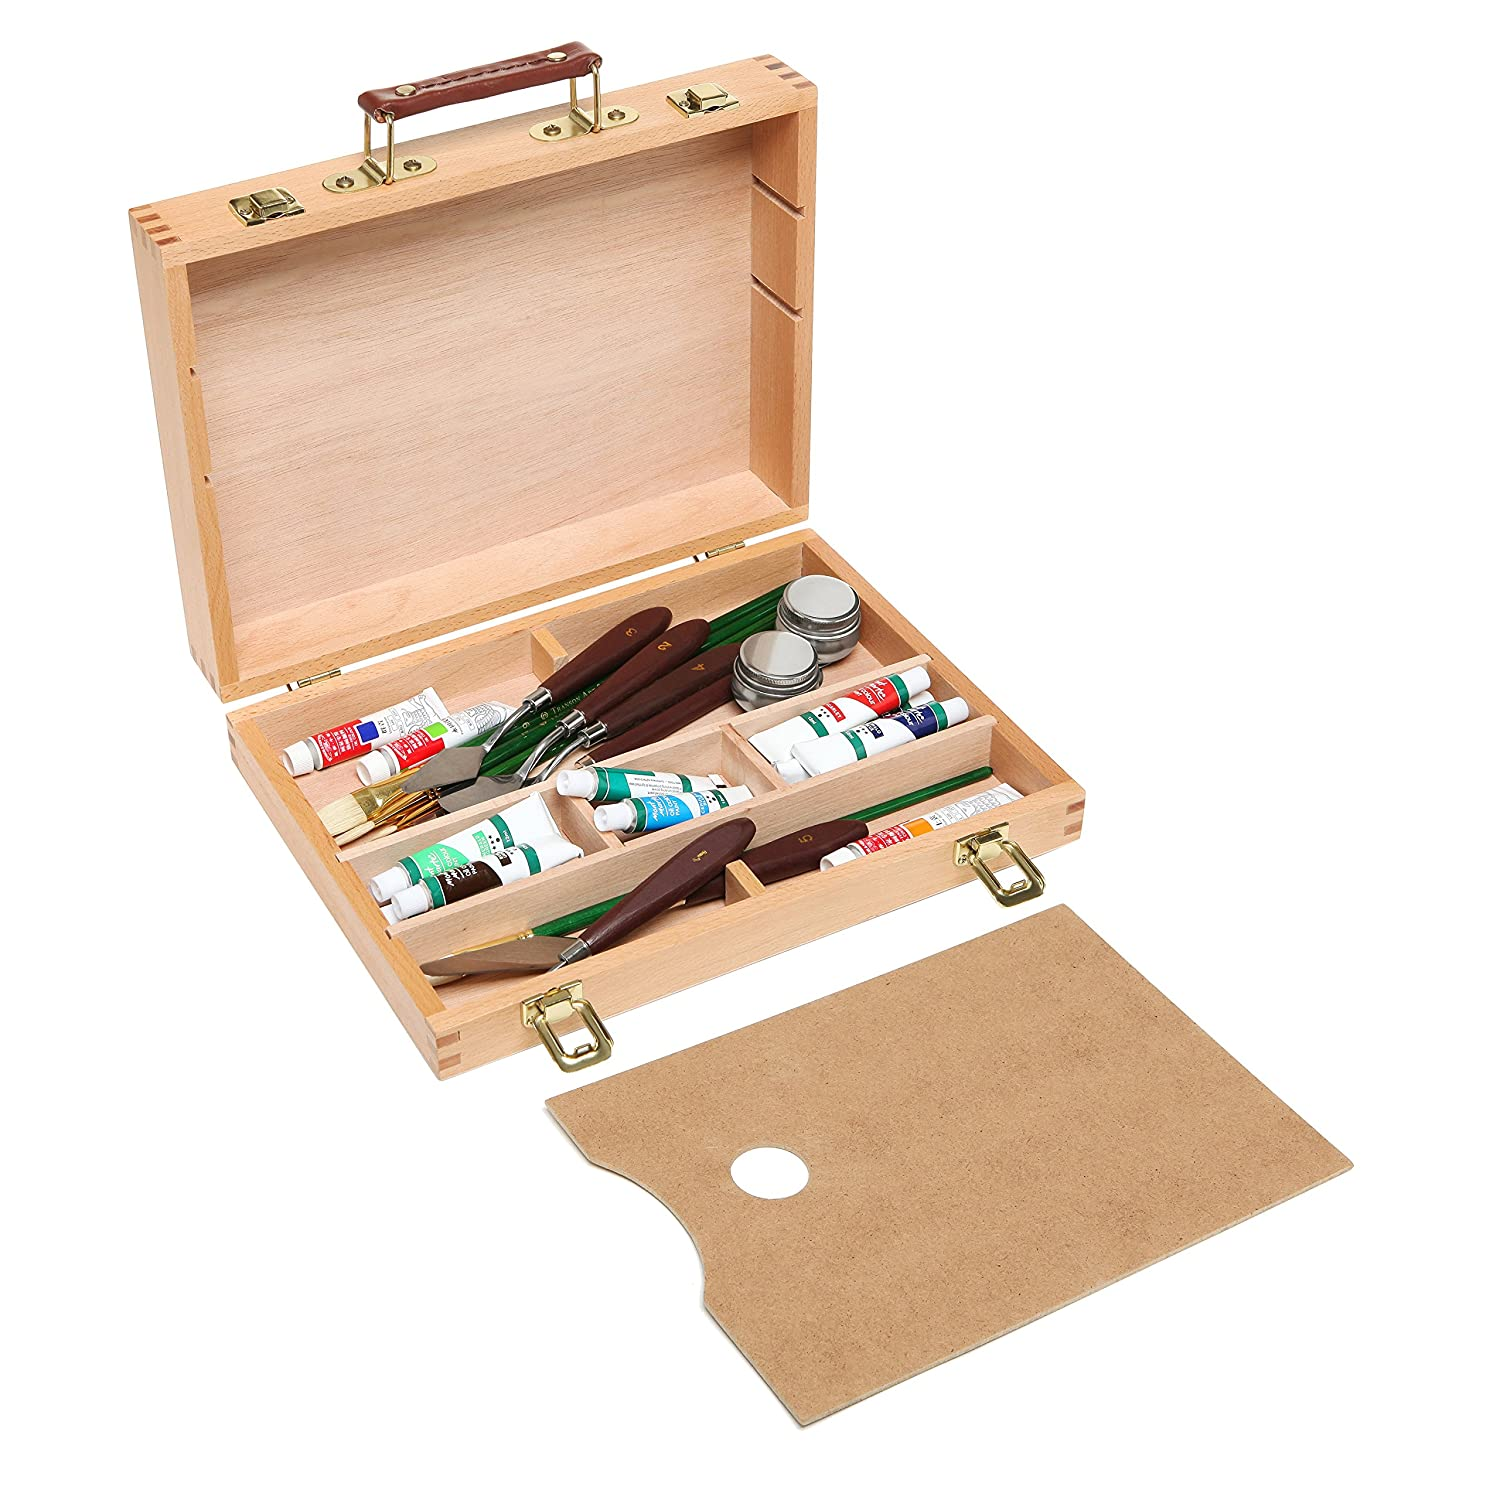 Genial Amazon.com: Top Handle Portable Wooden Arts / Crafts Supplies Storage  Organizer / Artist Carrying Case Box   MyGift